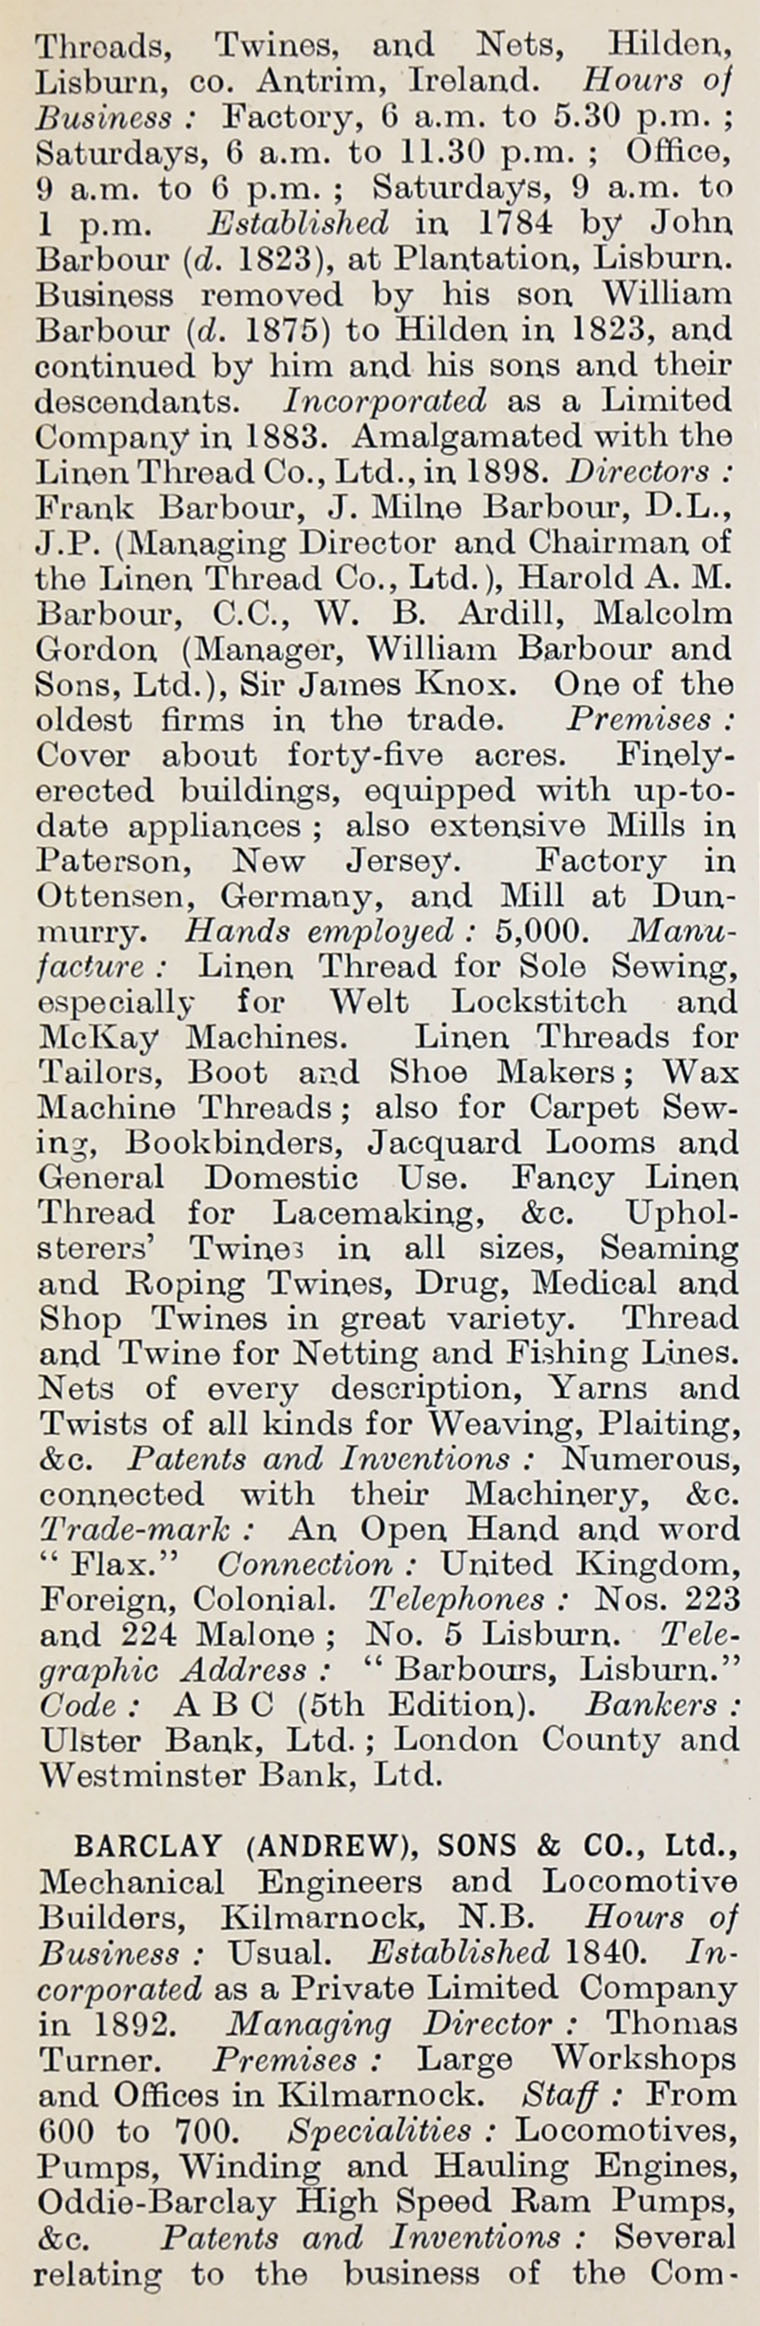 1914 Who's Who in Business: Company B - Graces Guide